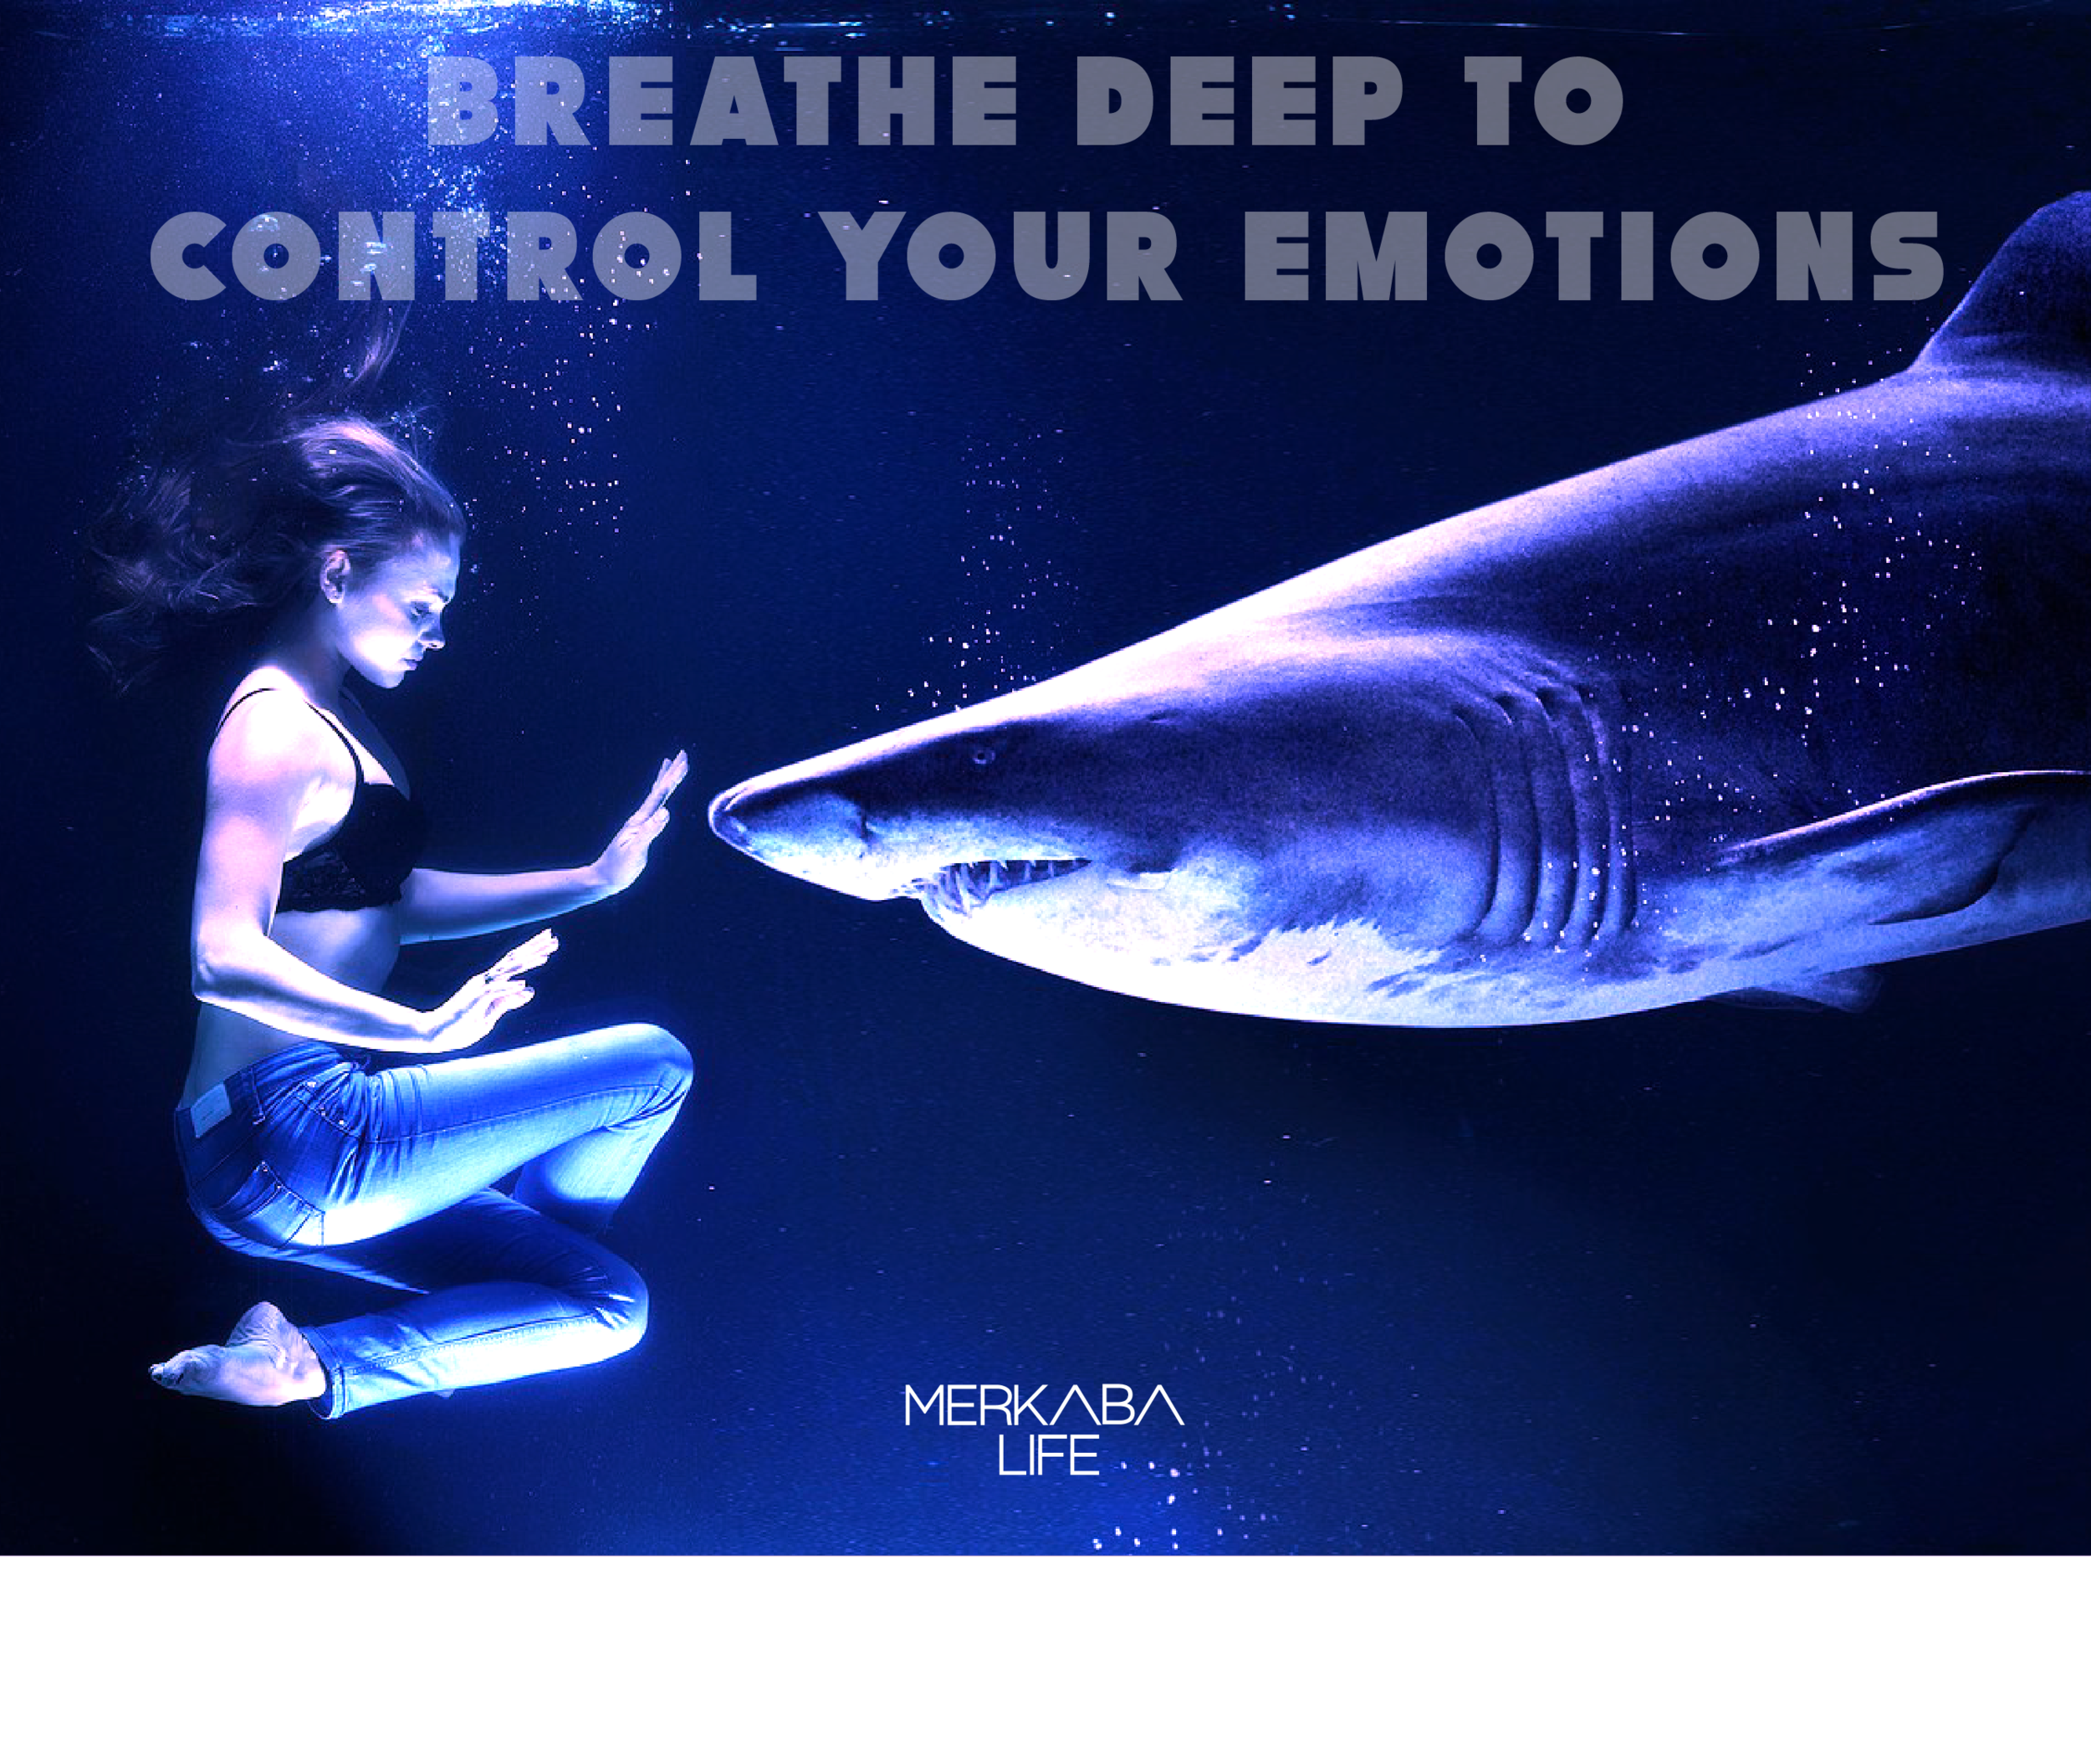 Take back control of your emotions with the rhythm of your breath.